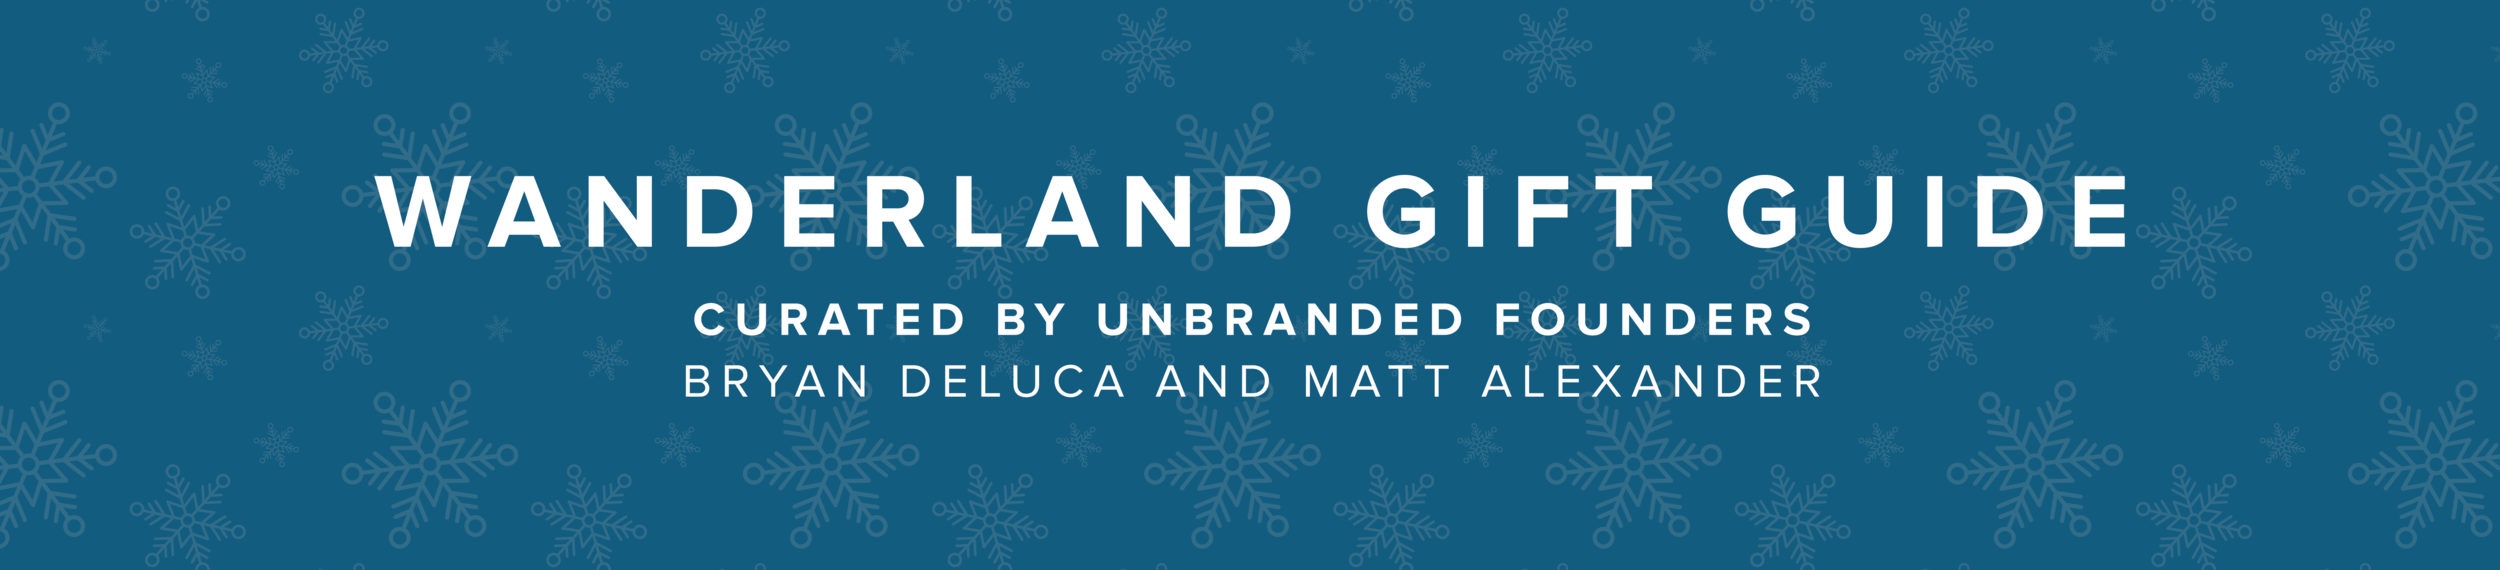 Wanderland Gift Guide-01.png